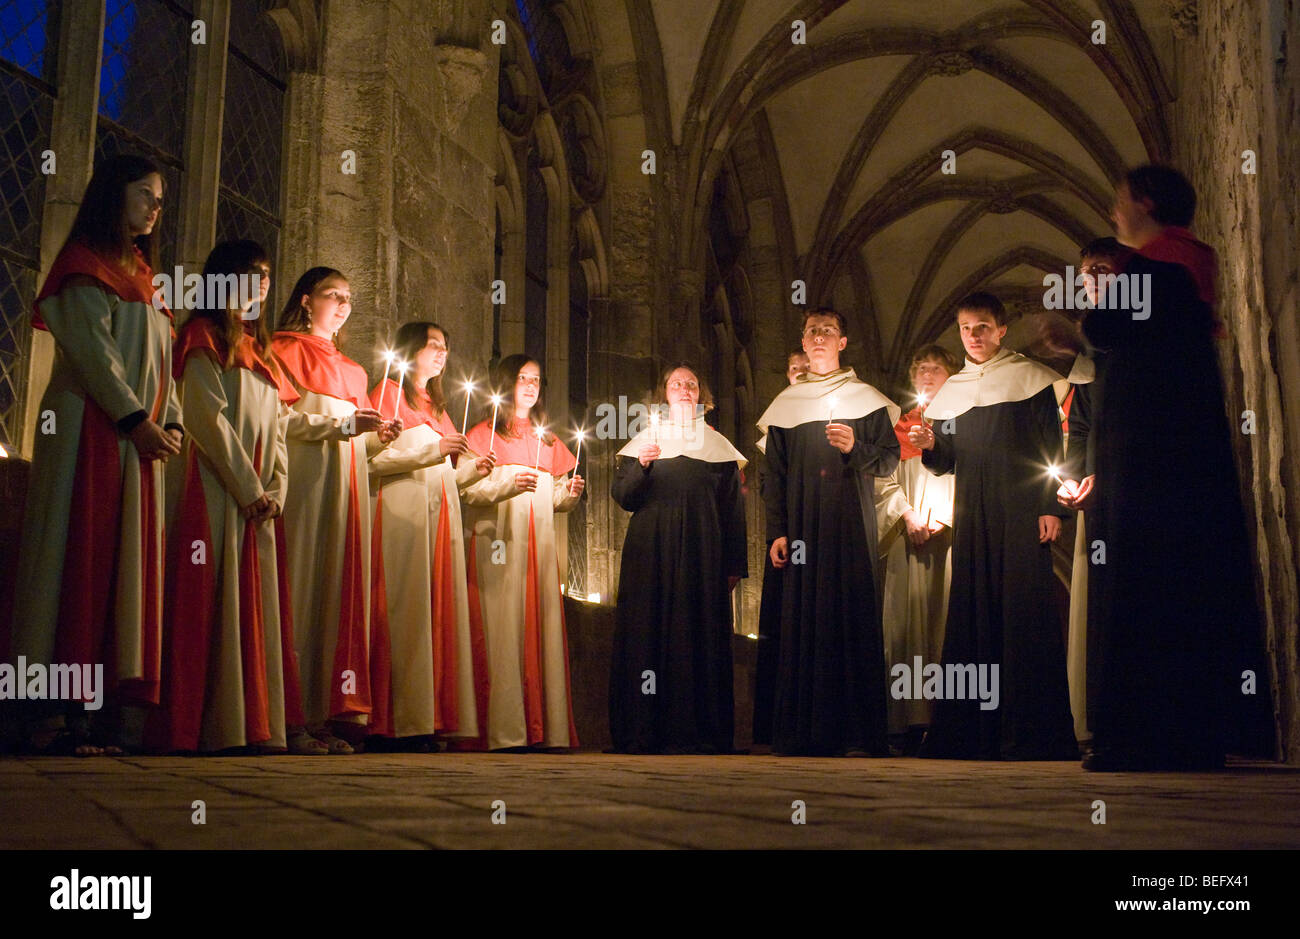 CLASSIC CHORAL SINGING AT ZISTERZIENSER ABBY. - Stock Image